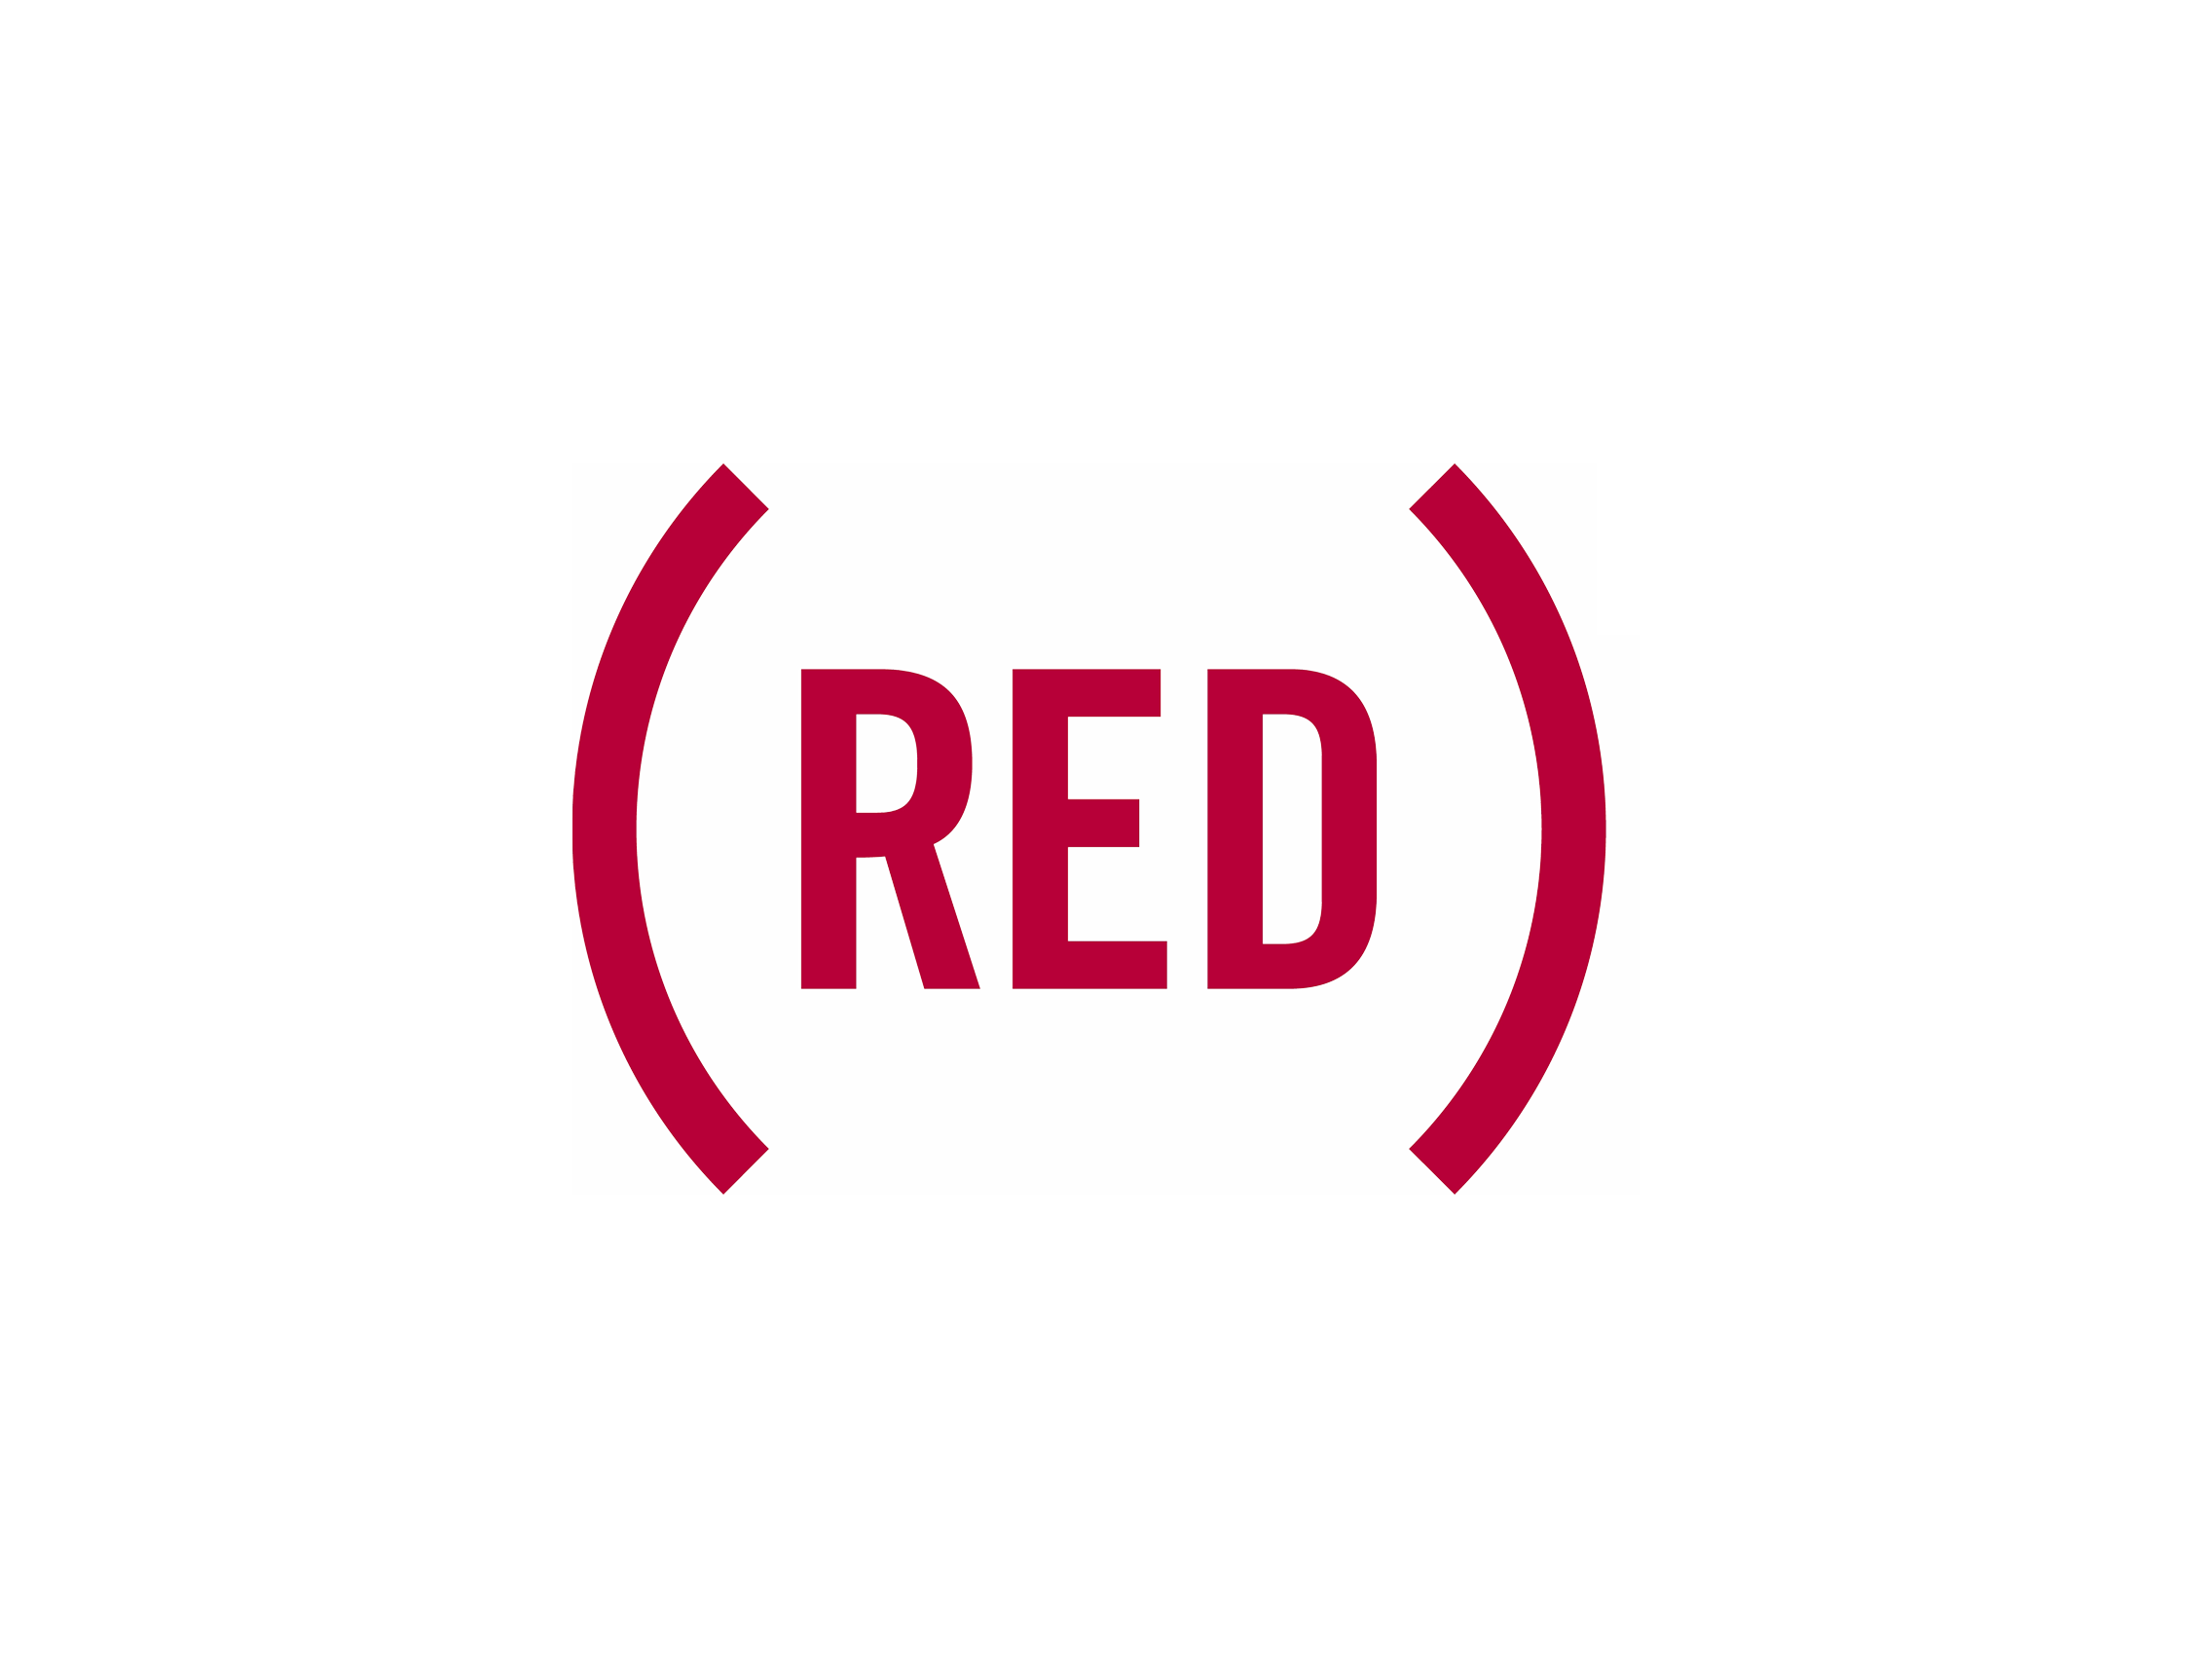 RED-logo (1).png